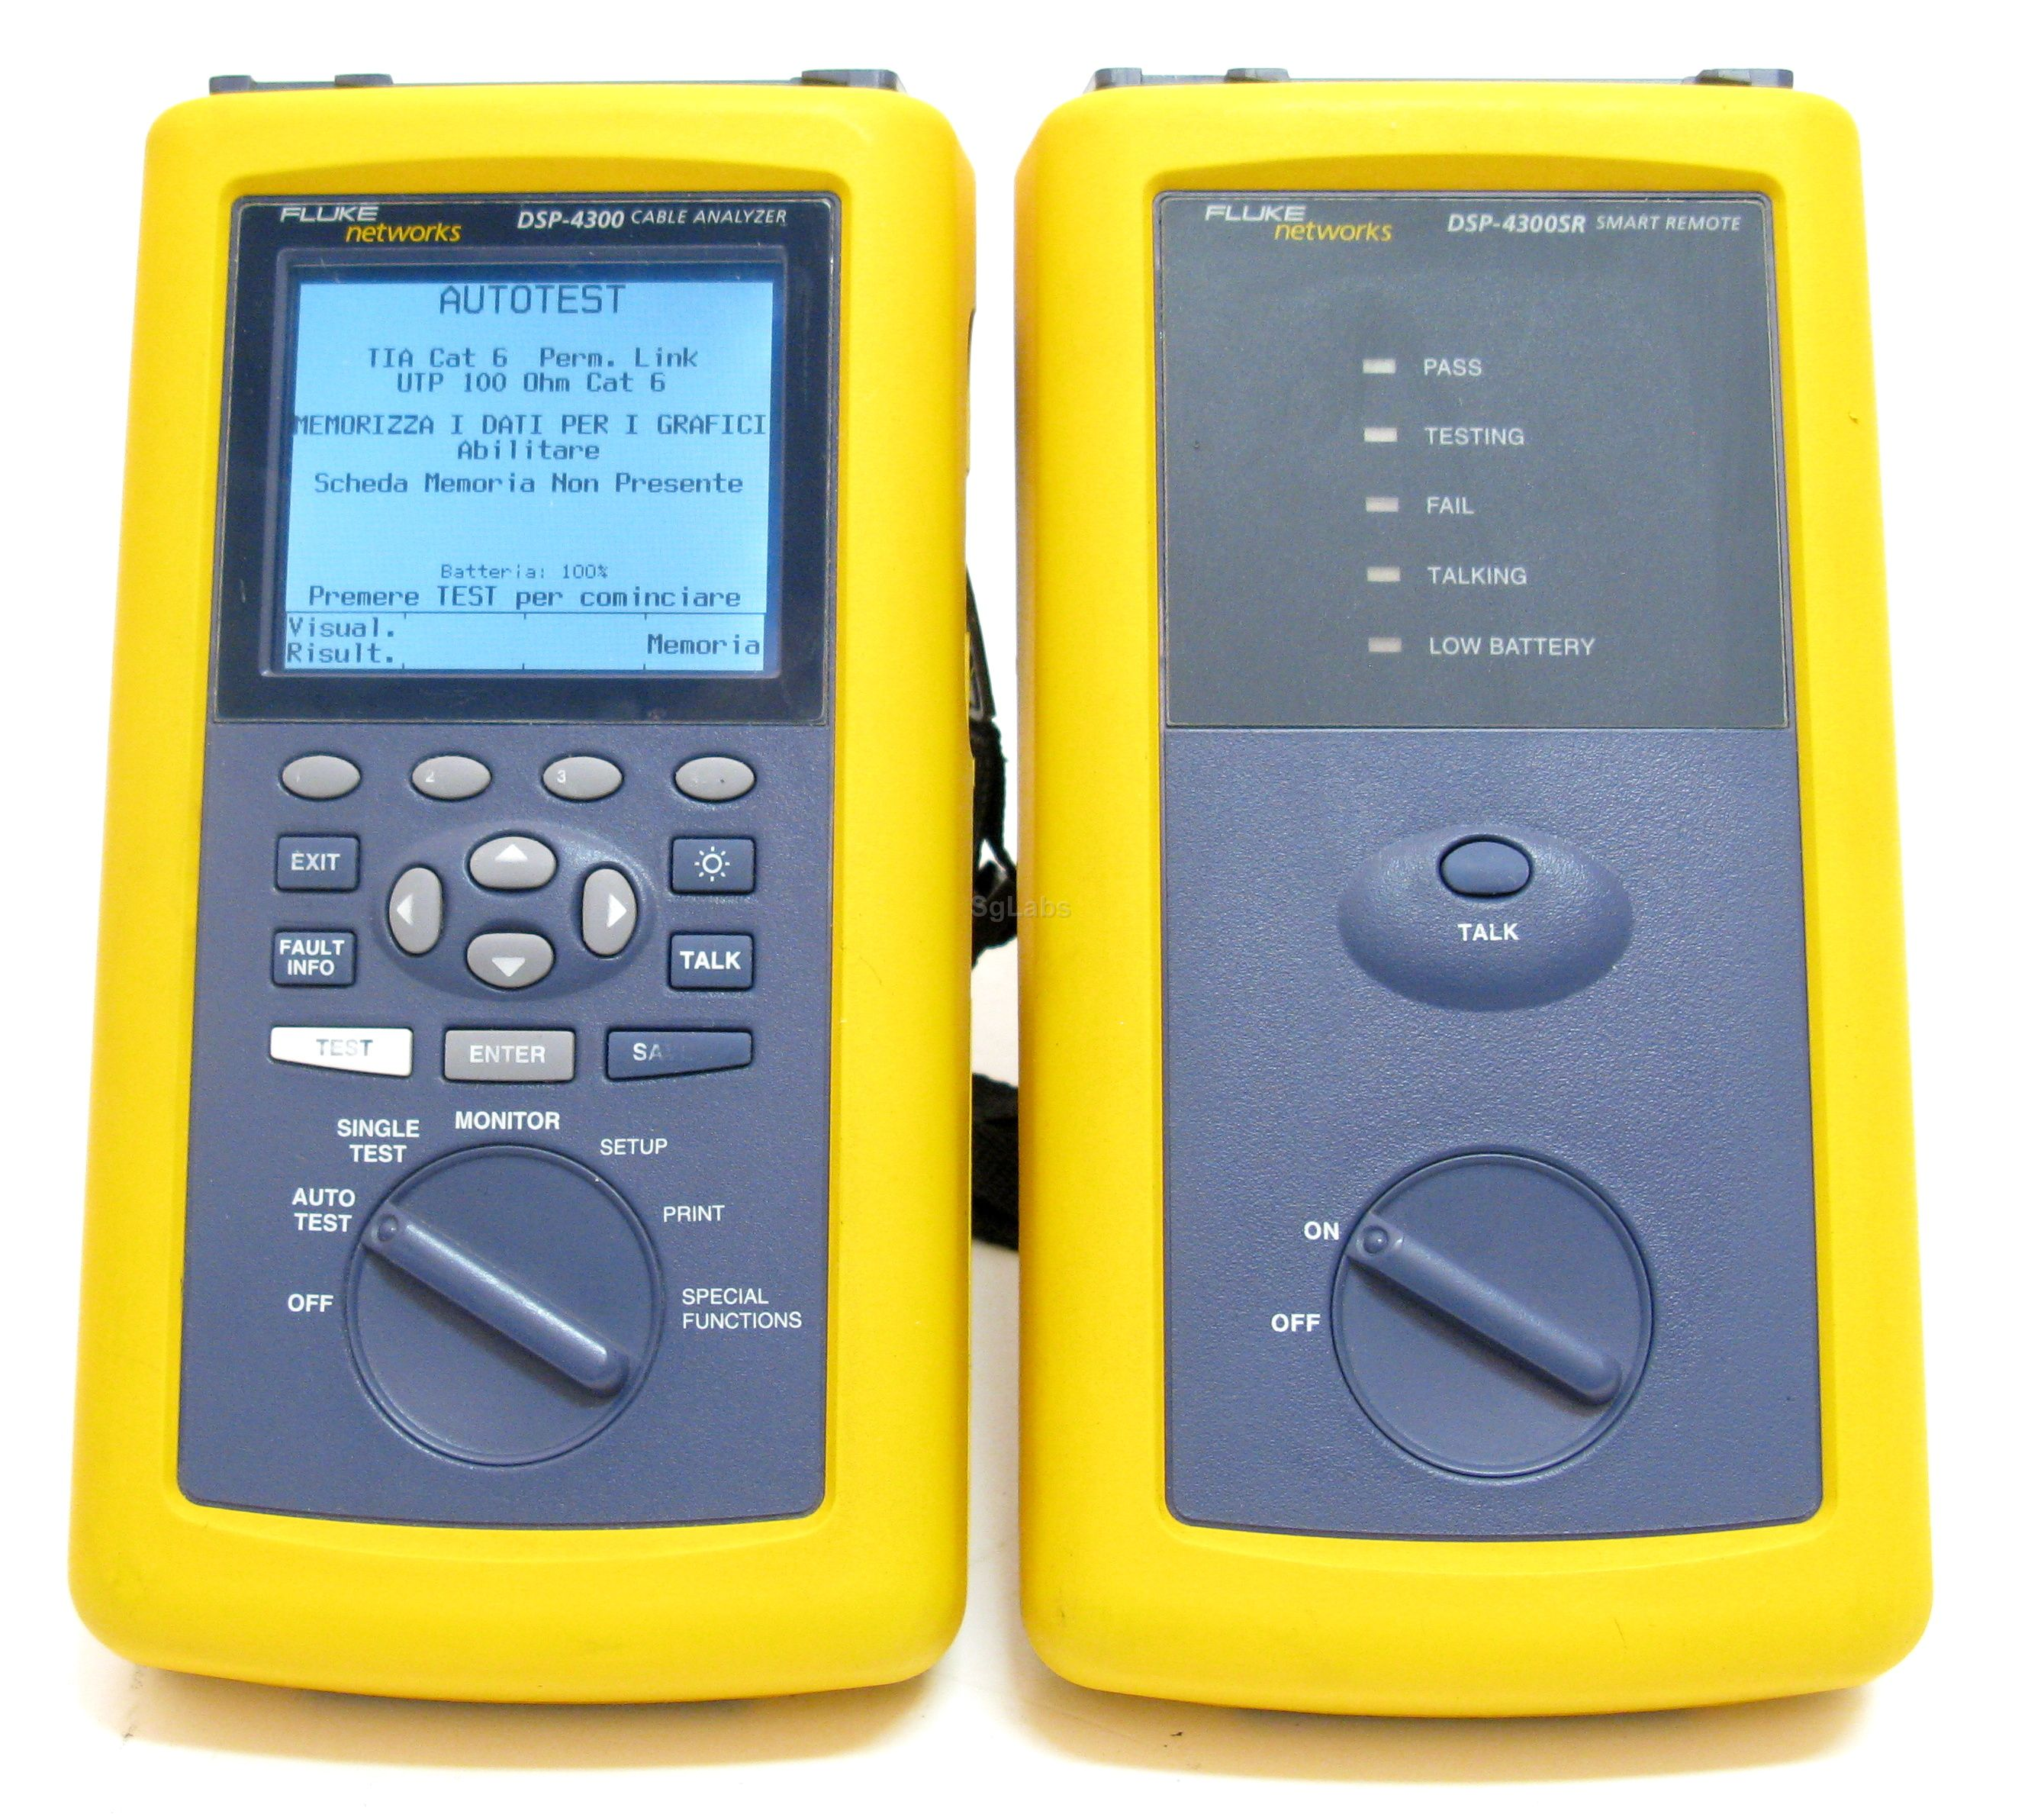 fluke dsp 4300 rh sglabs it fluke networks dsp-4300 user manual fluke dsp-4300 manual